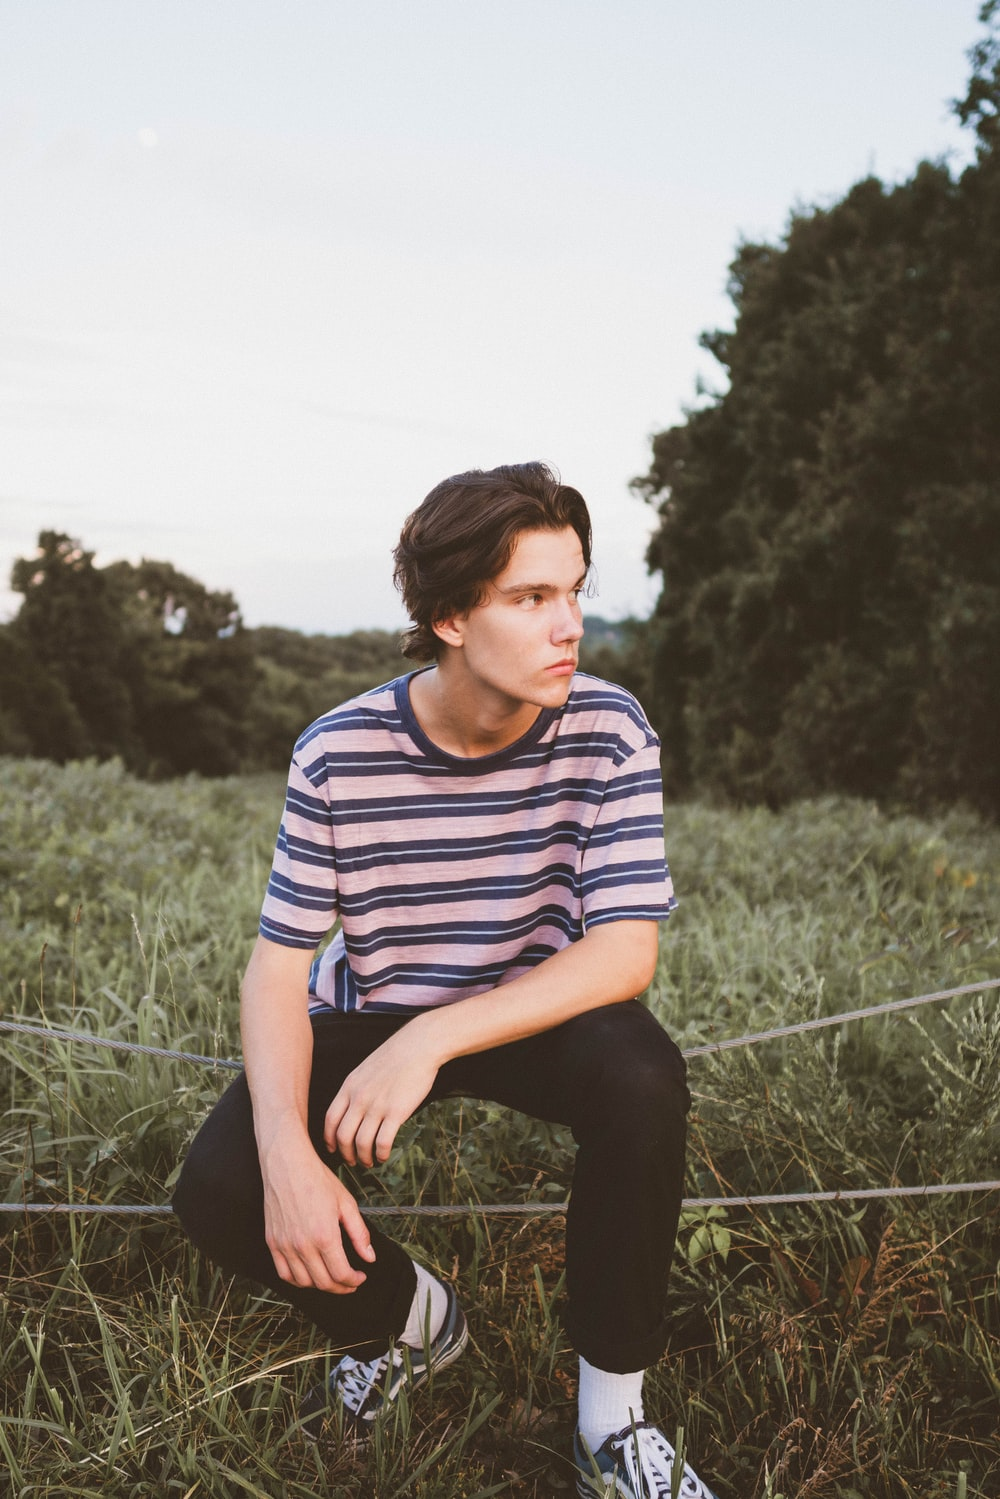 man in blue and white striped crew neck t-shirt sitting on grass field during daytime